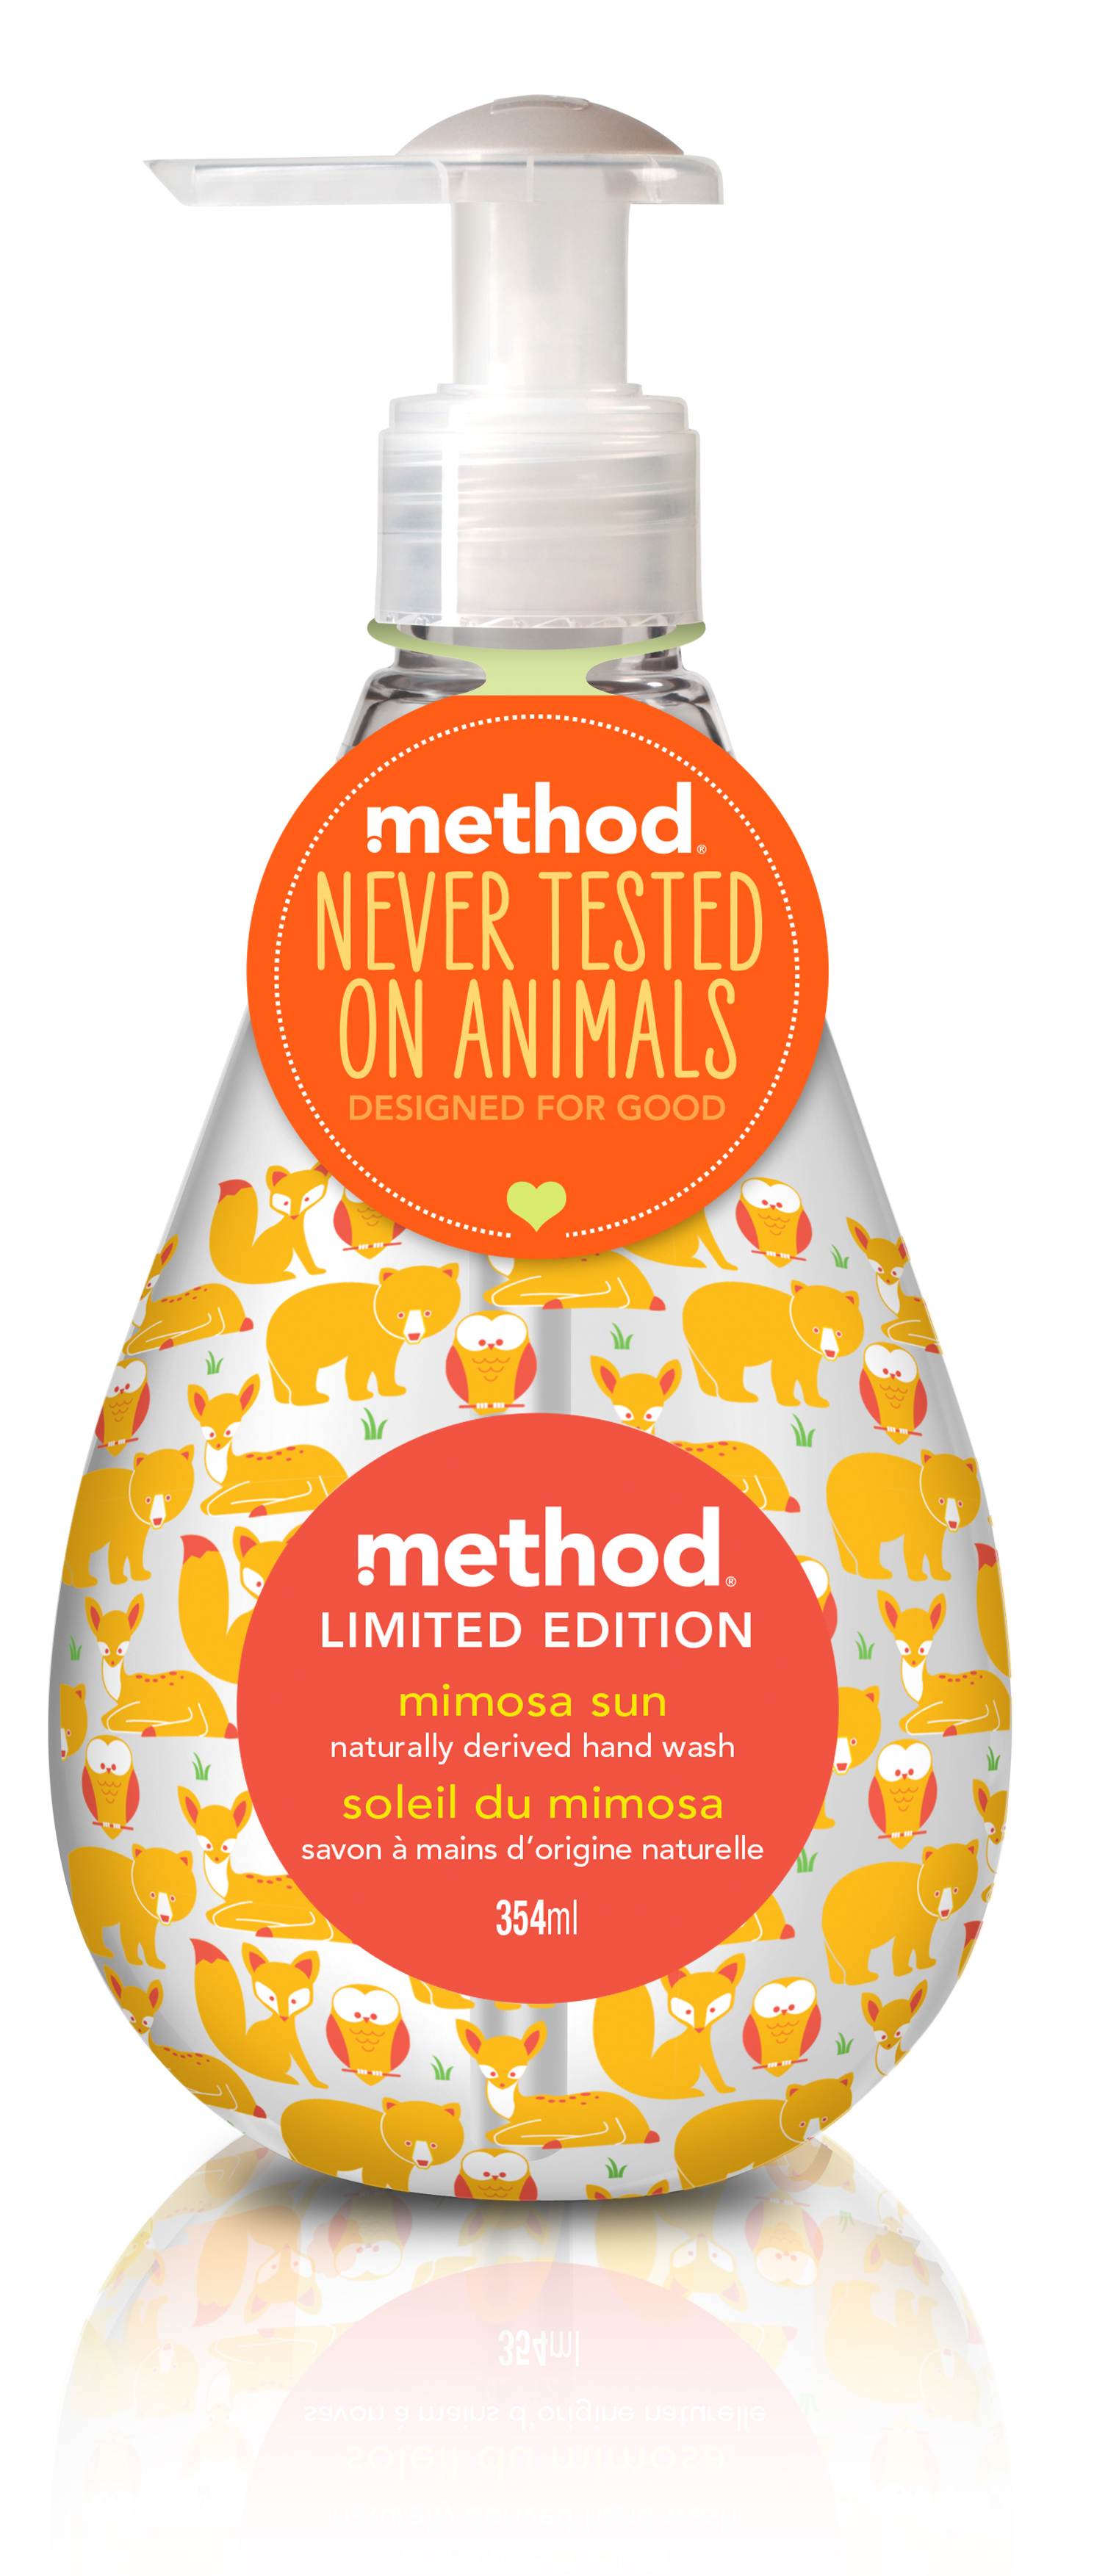 method mimosa hand wash